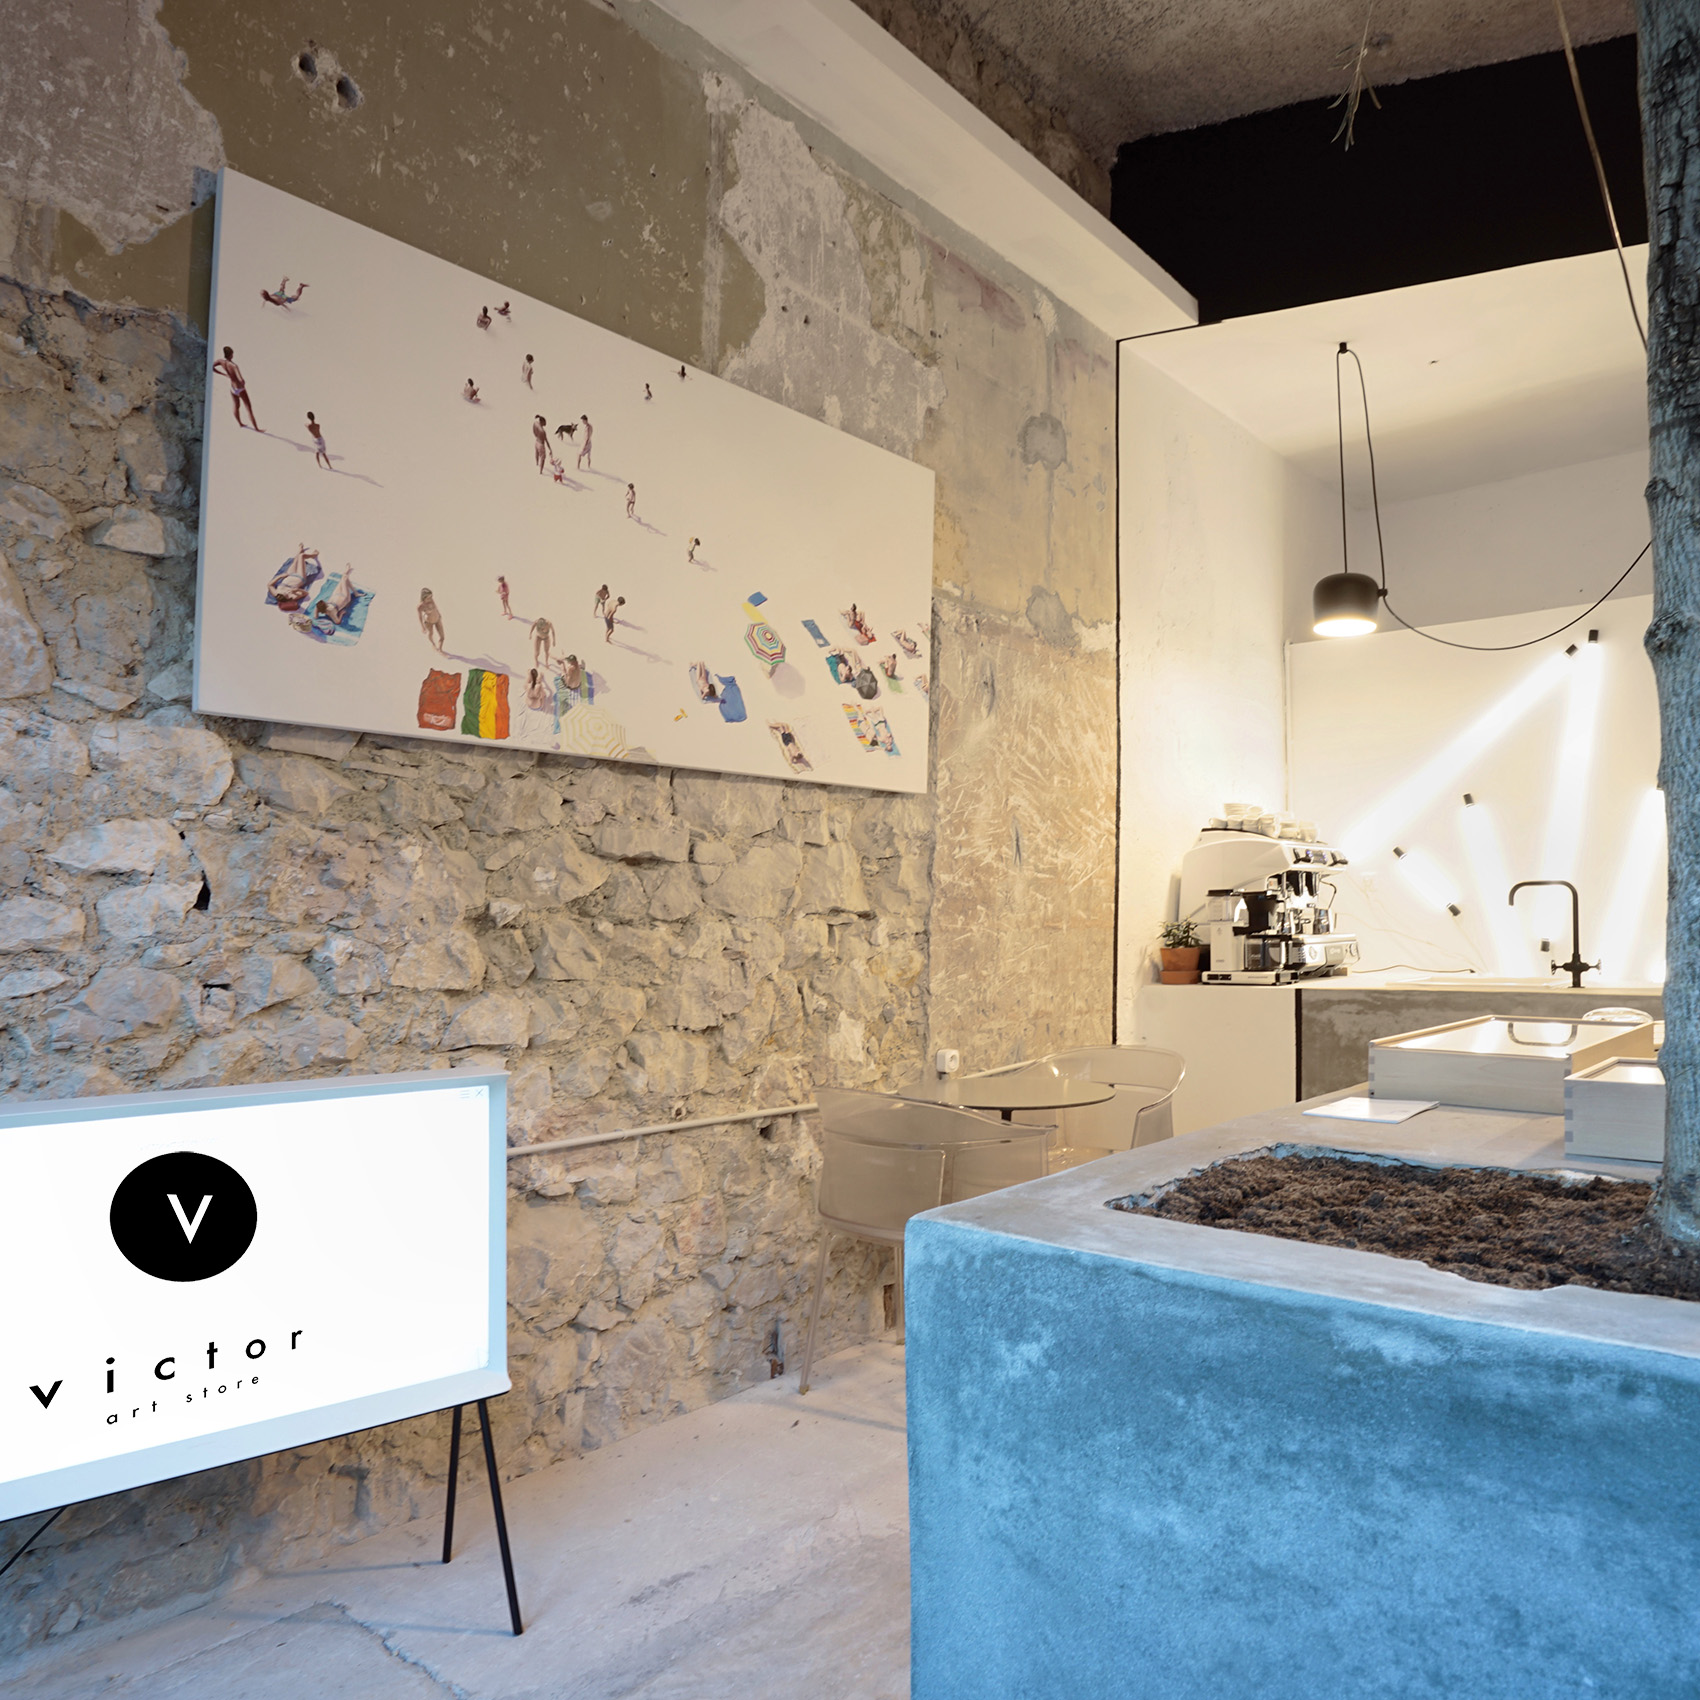 VICTOR ART STORE | Concept-Store Marseille